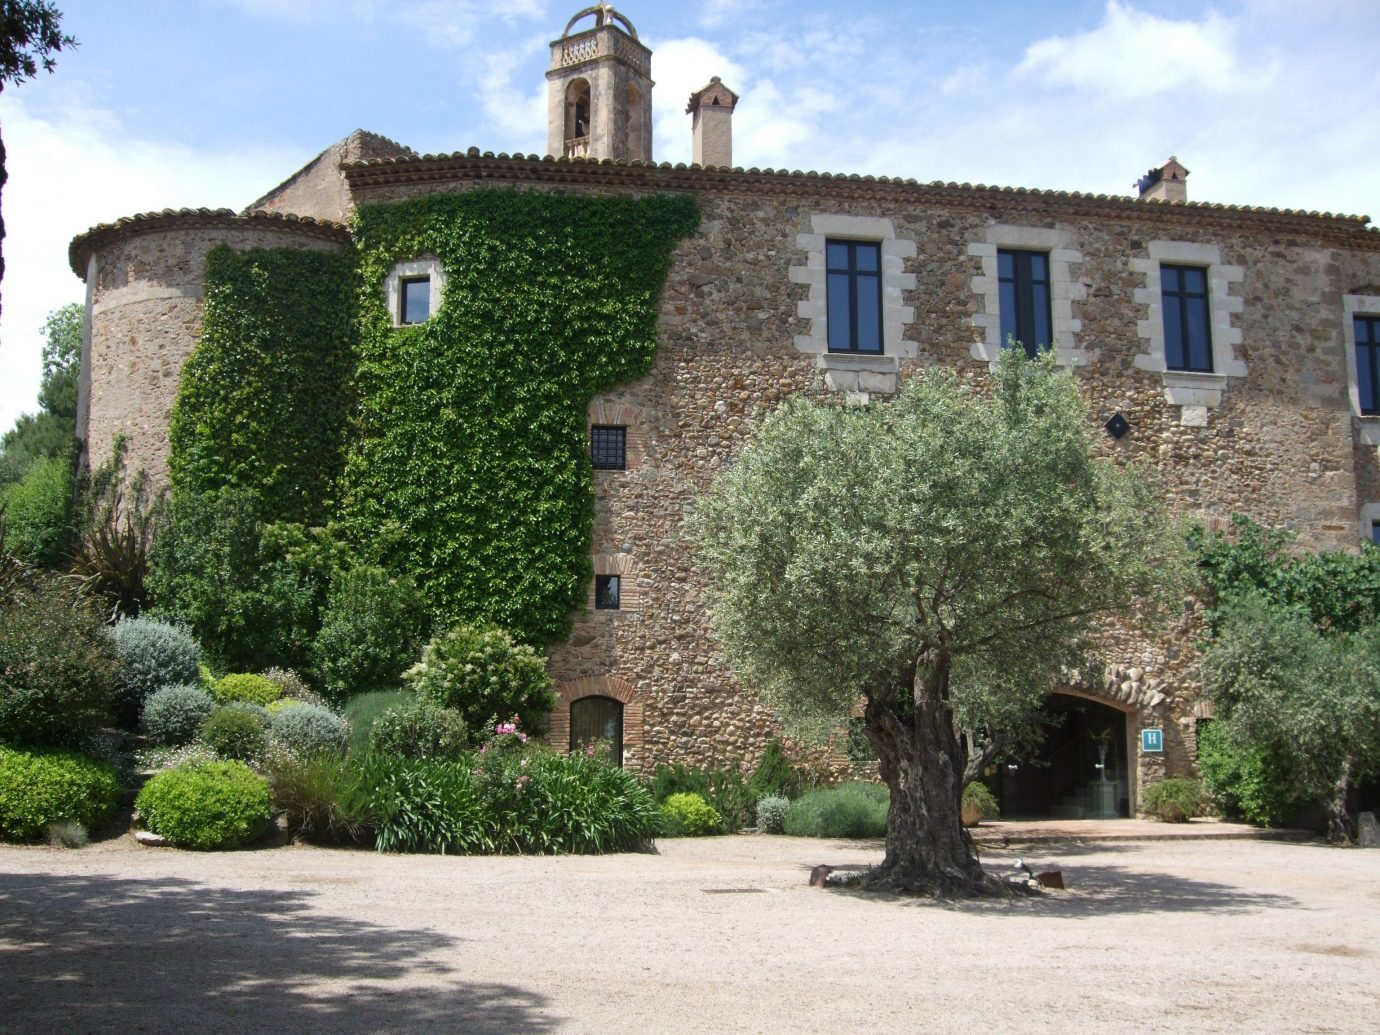 Exterior view of Hotel Castell d'Emporda, Girona, Spain